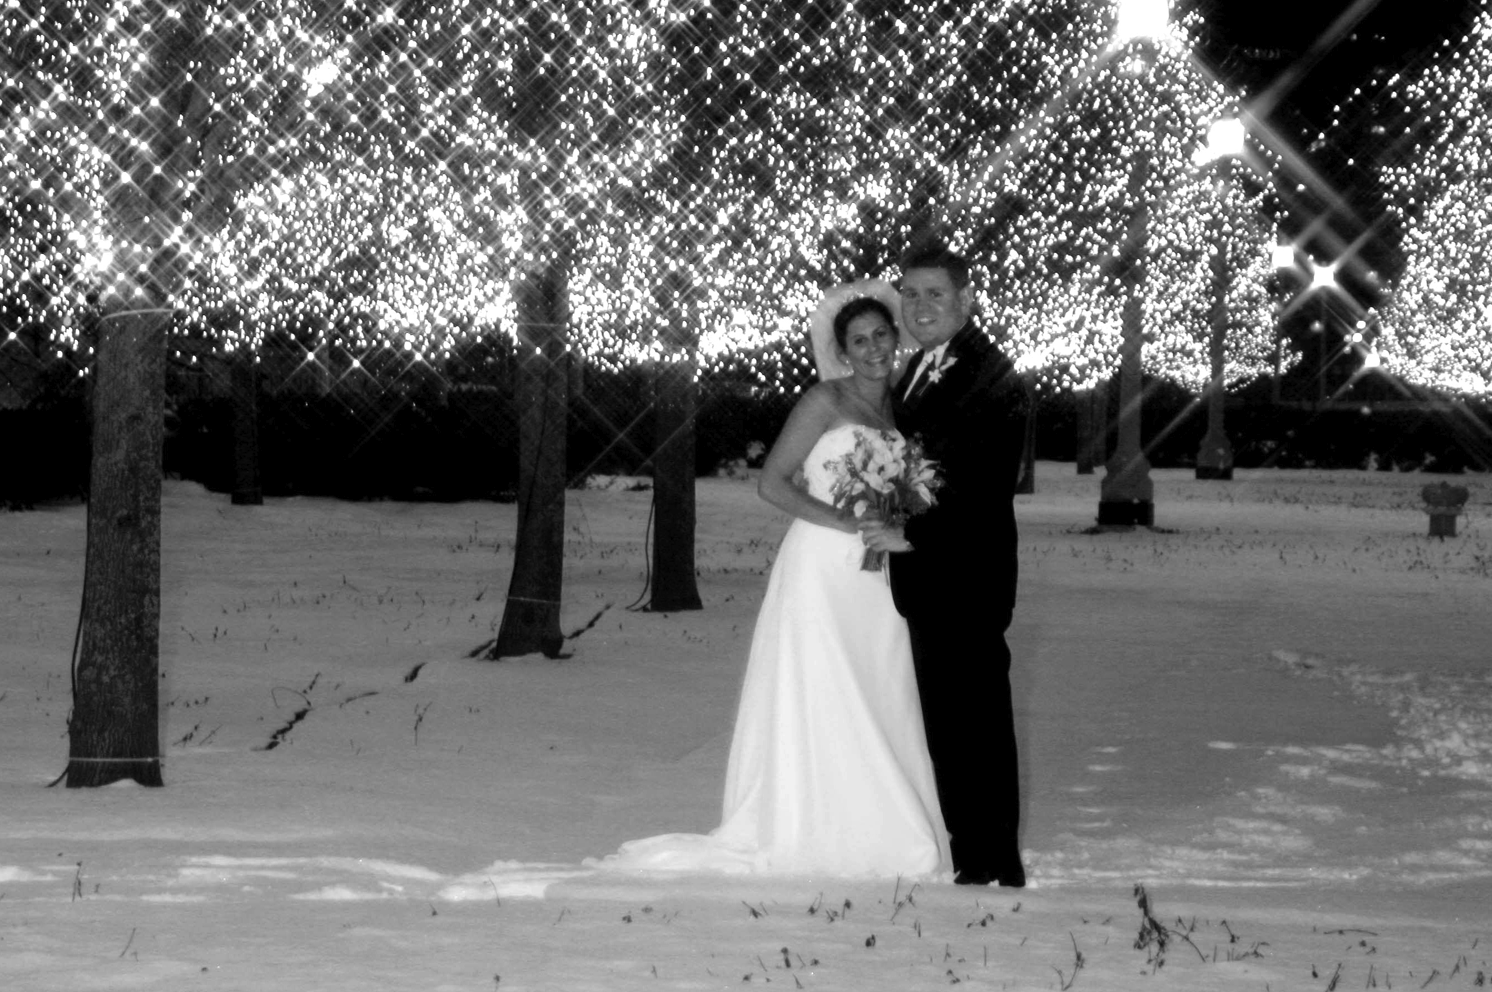 rbh designer concepts winter weddings With essence wedding photography